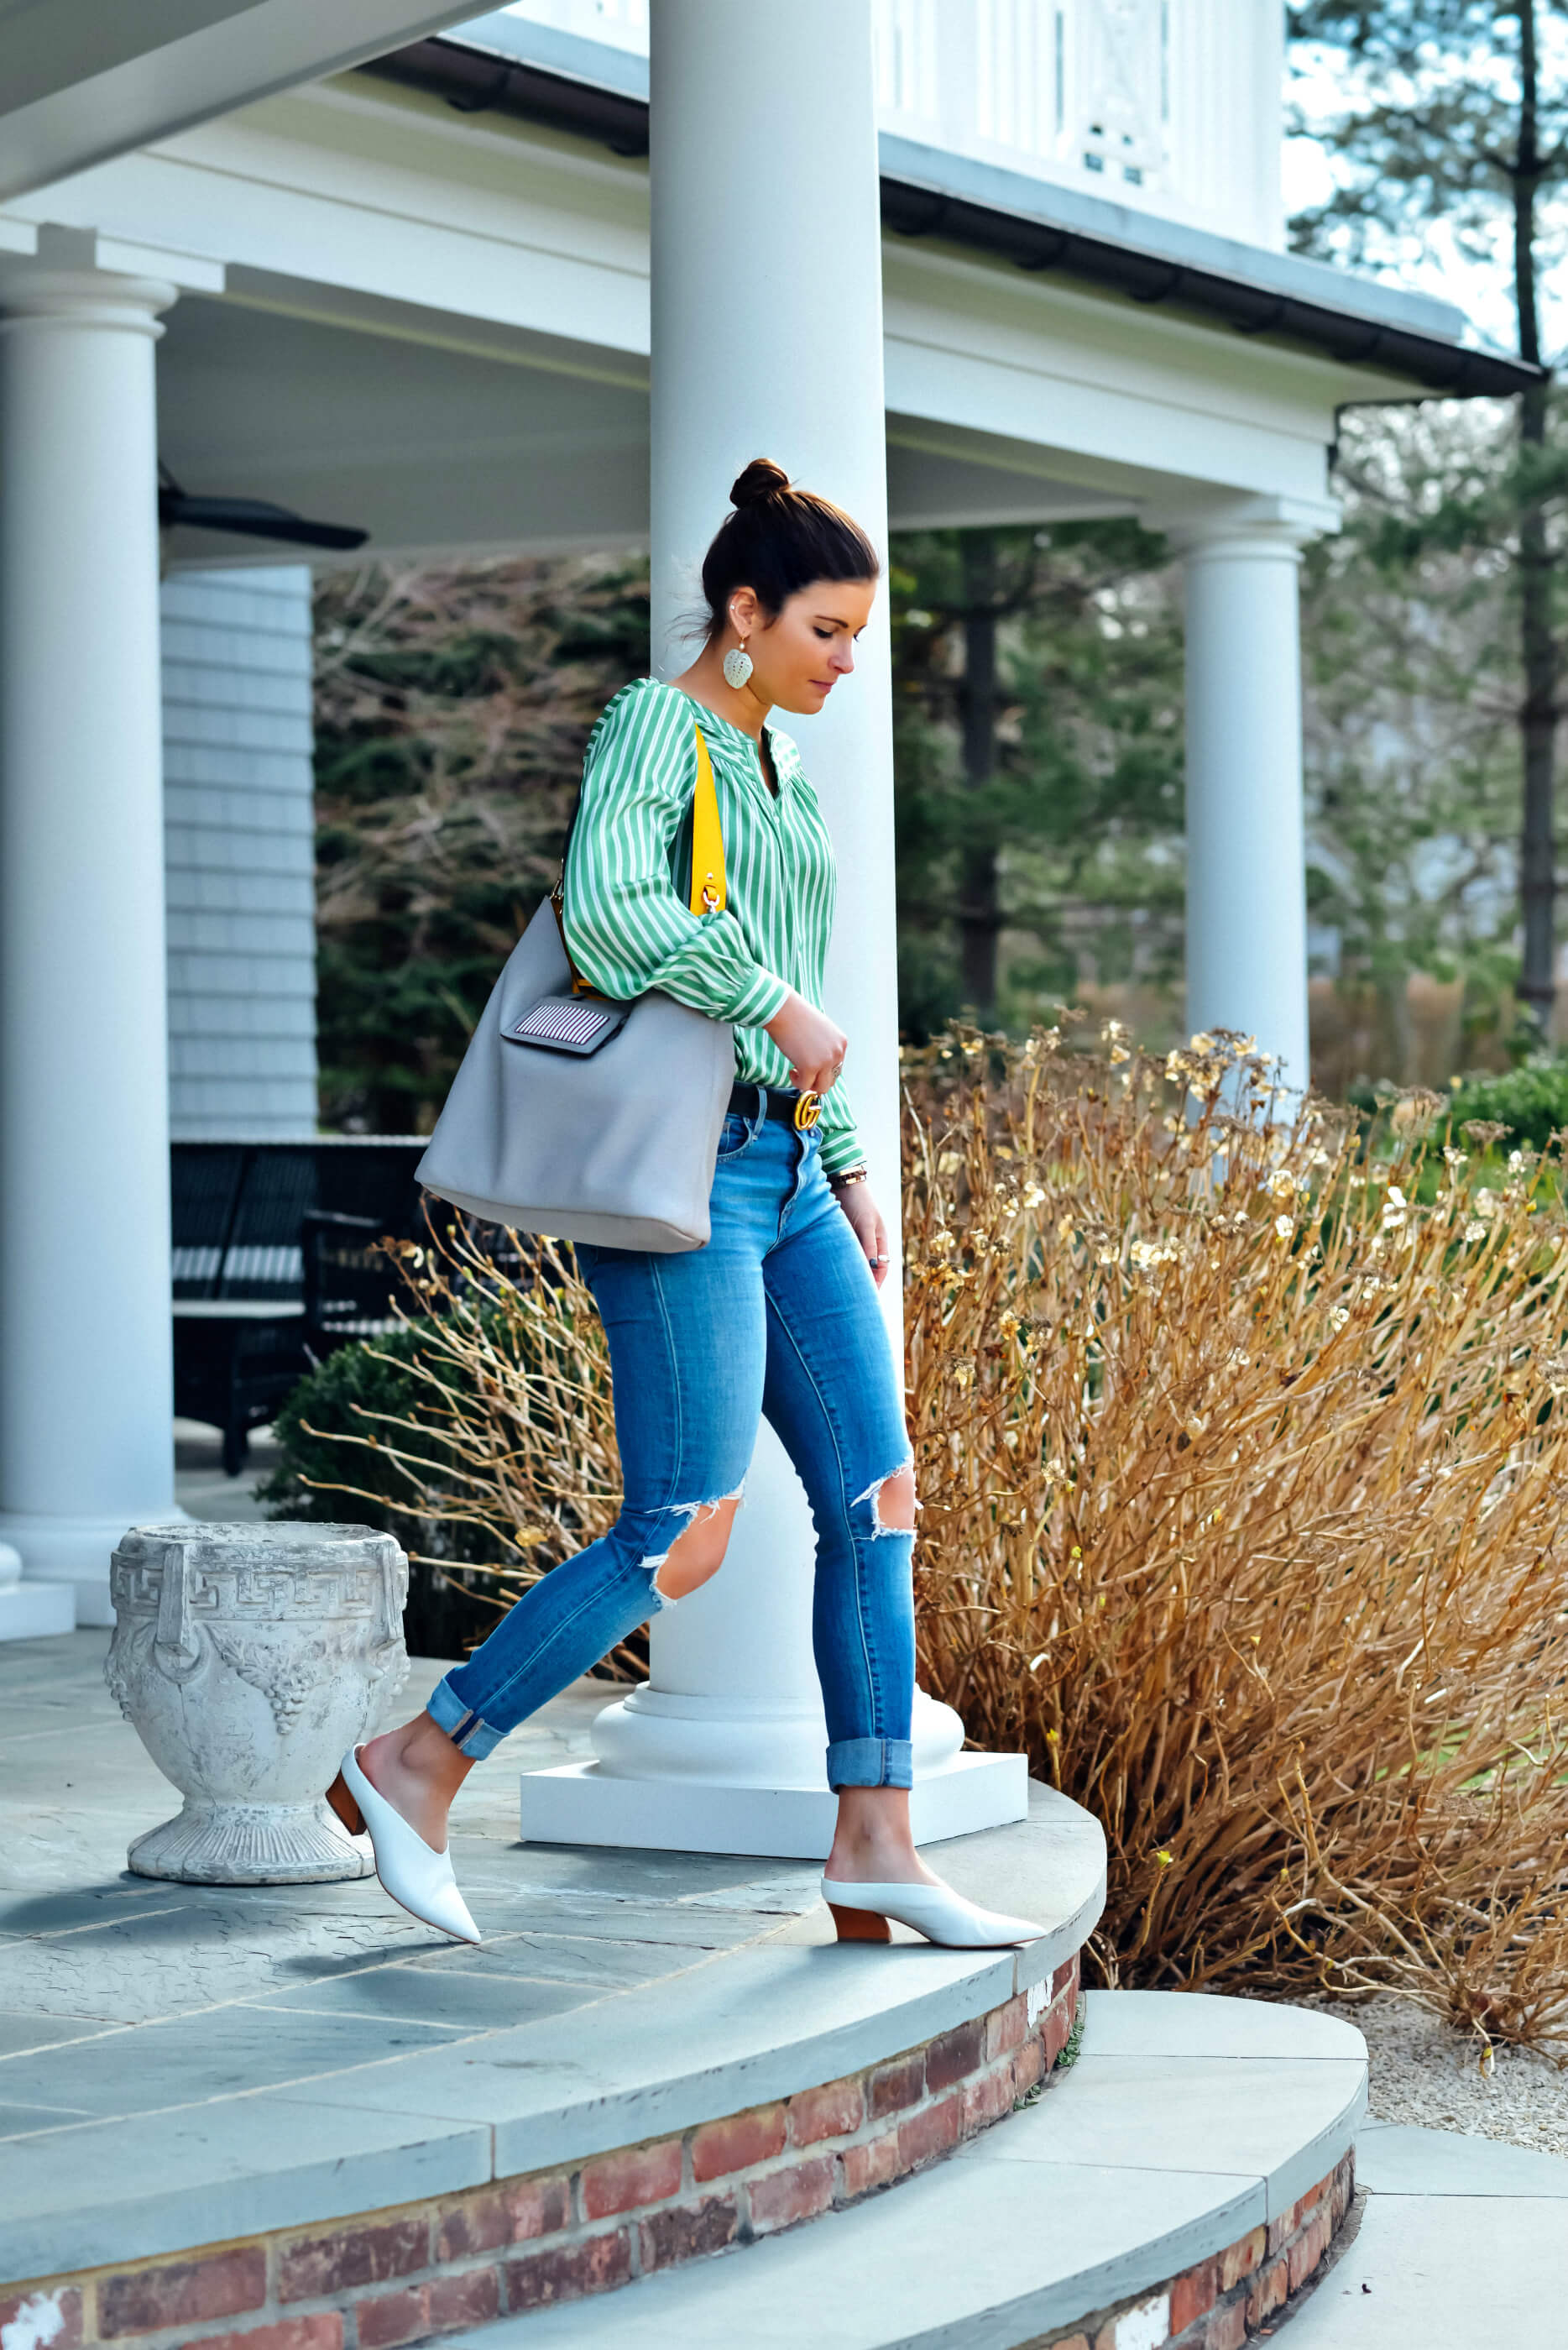 Green Striped Blouse, Henri Bendel Influencer Hobo Bag, Levi's Denim, White Mules, Spring Outfit, Tilden of To Be Bright